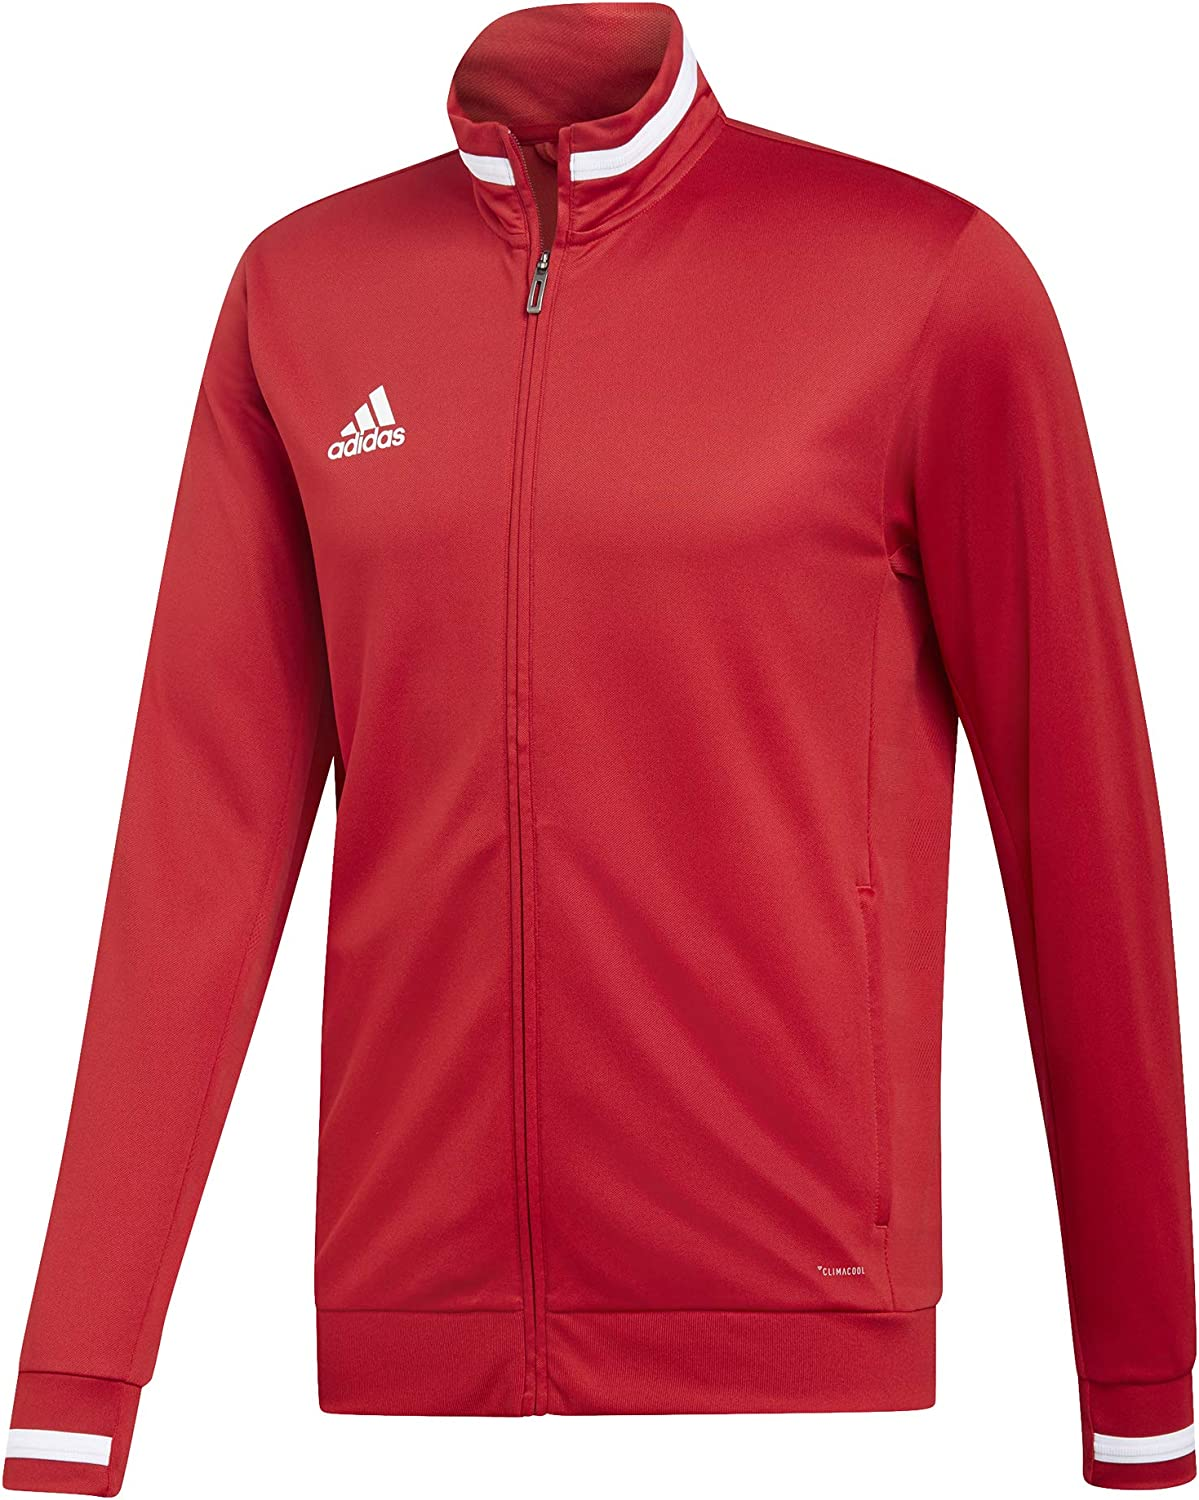 Power Red//White S Hombre adidas T19 TRK JKT M Chaqueta